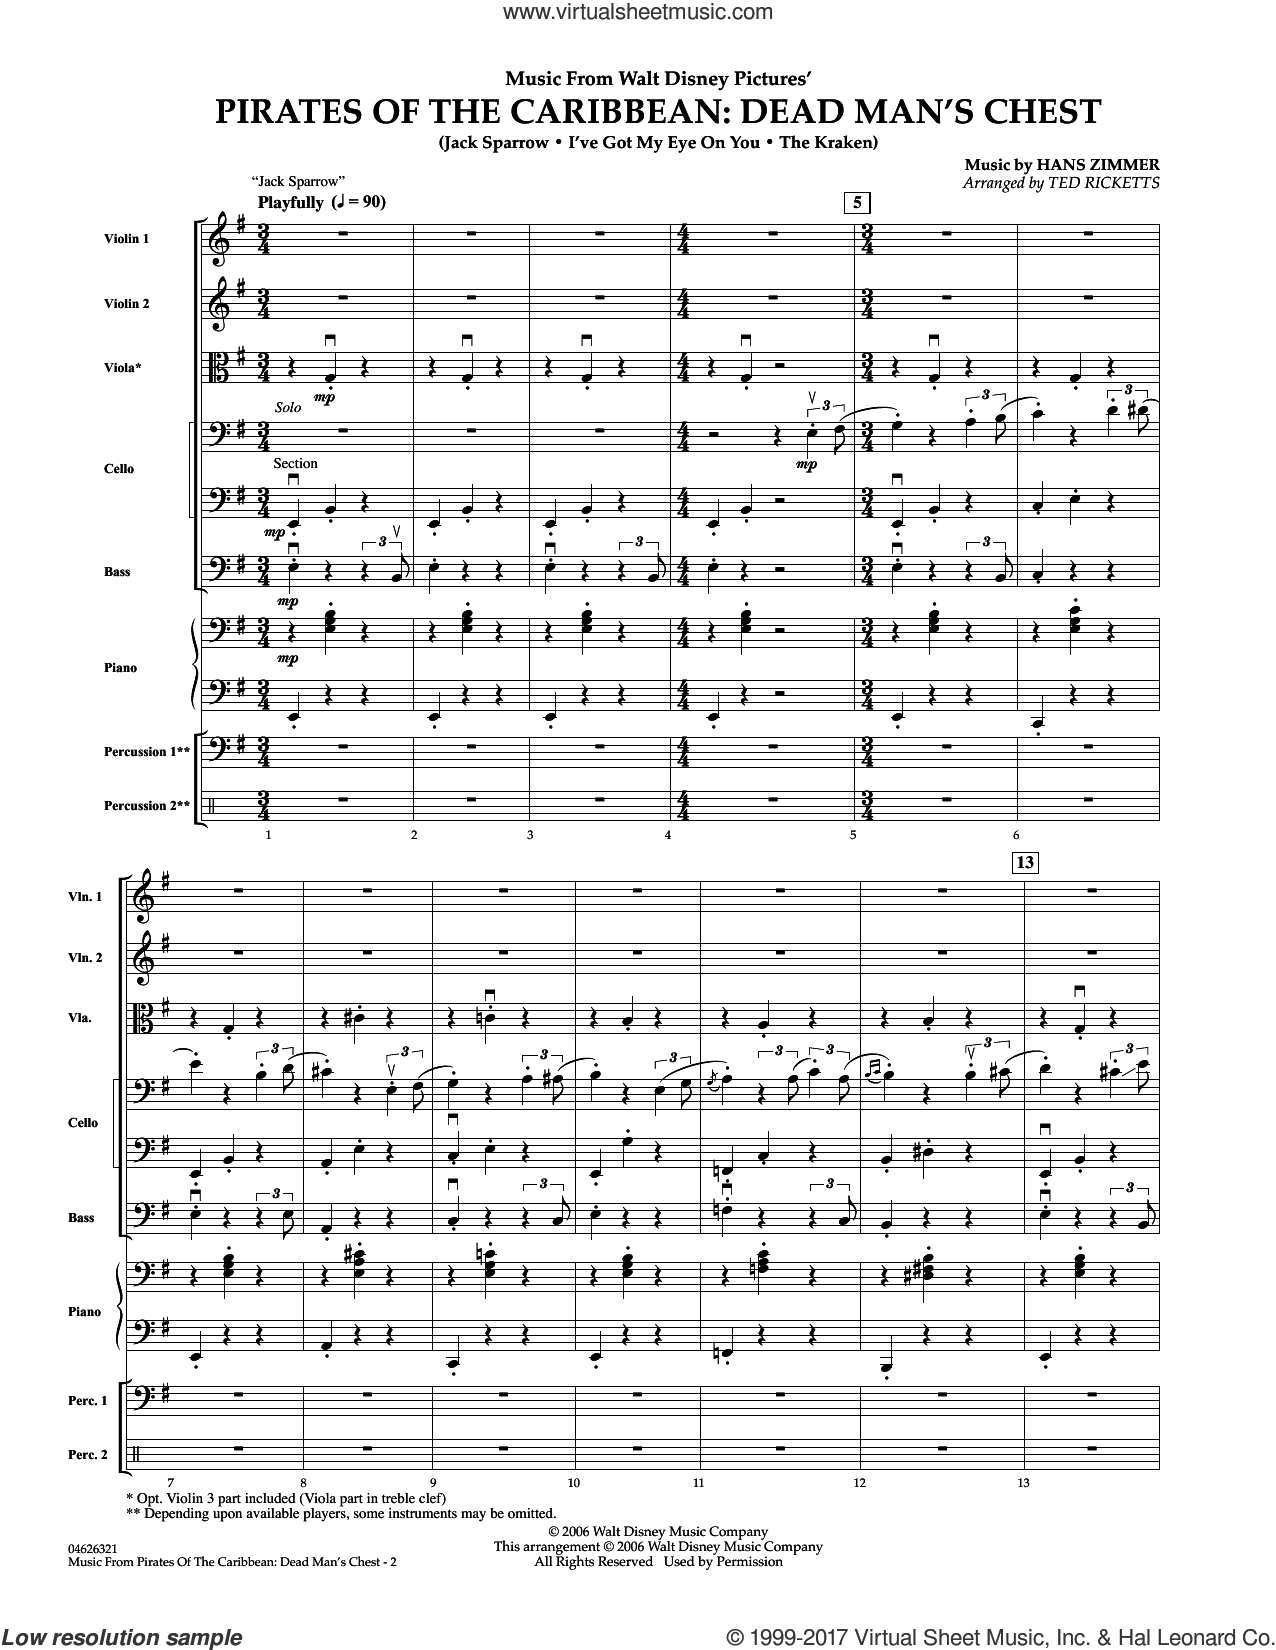 Music from Pirates of the Caribbean: Dead Man's Chest (COMPLETE) sheet music for orchestra by Hans Zimmer and Ted Ricketts, intermediate